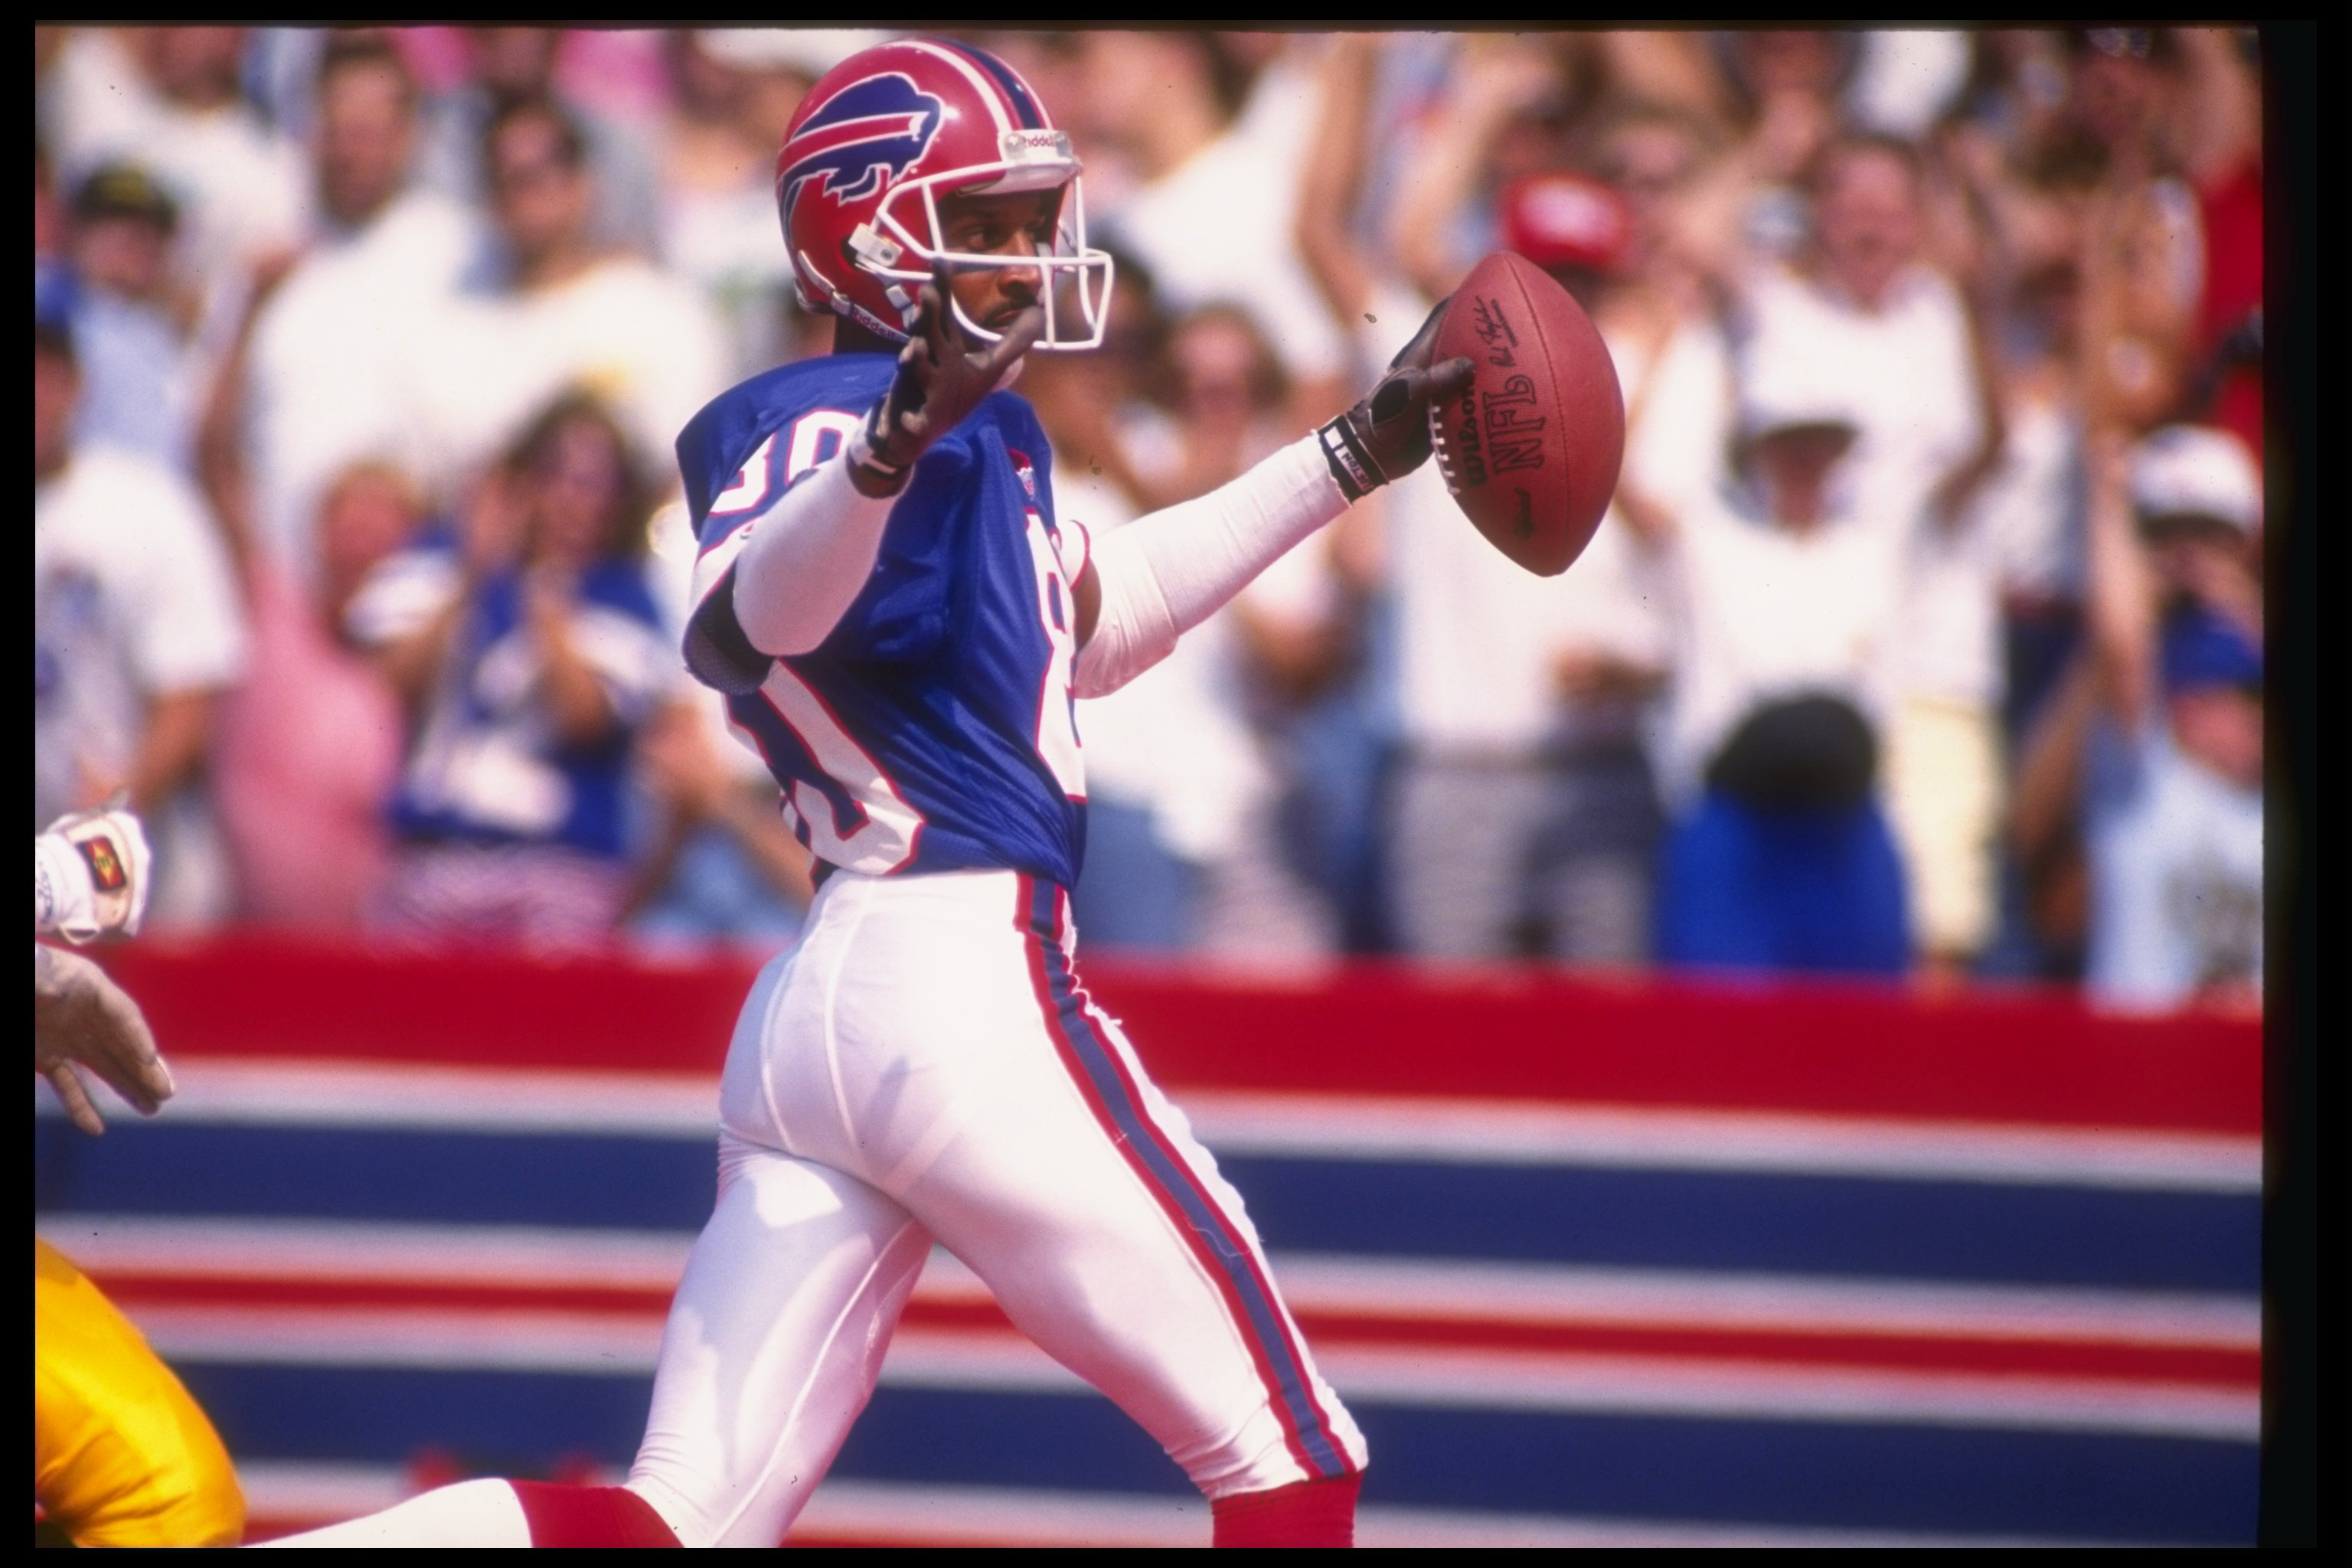 8 Sep 1991: Wide receiver James Lofton of the Buffalo Bills scores a touchdown during a game against the Pittsburgh Steelers at Rich Stadium in Orchard Park, New York. The Bills won the game, 52-34.